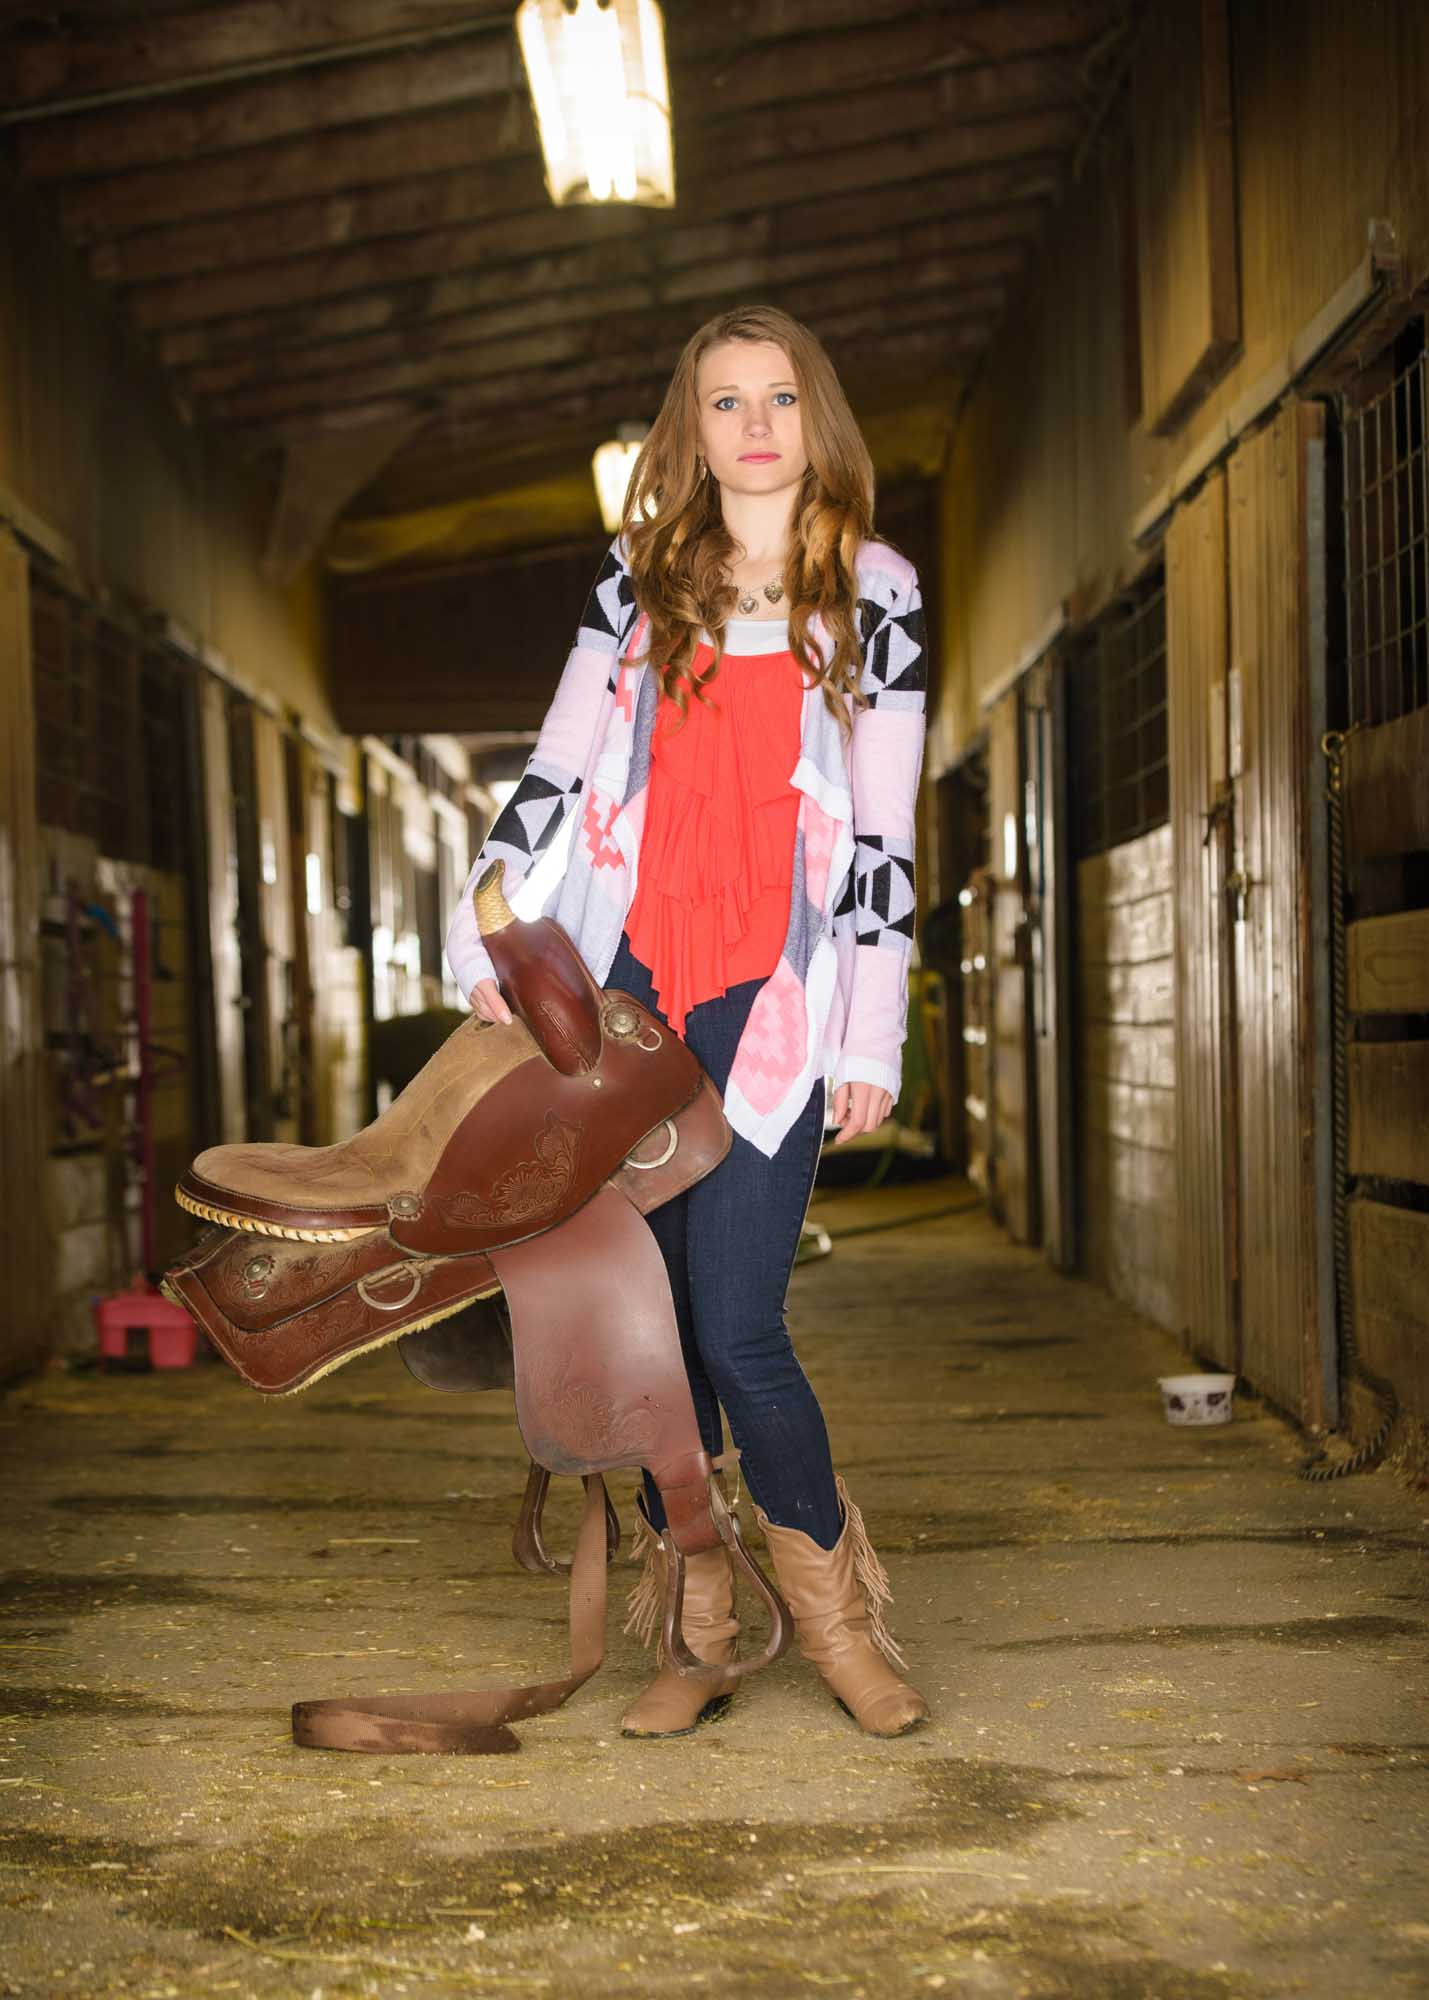 senior picture girl equestrian